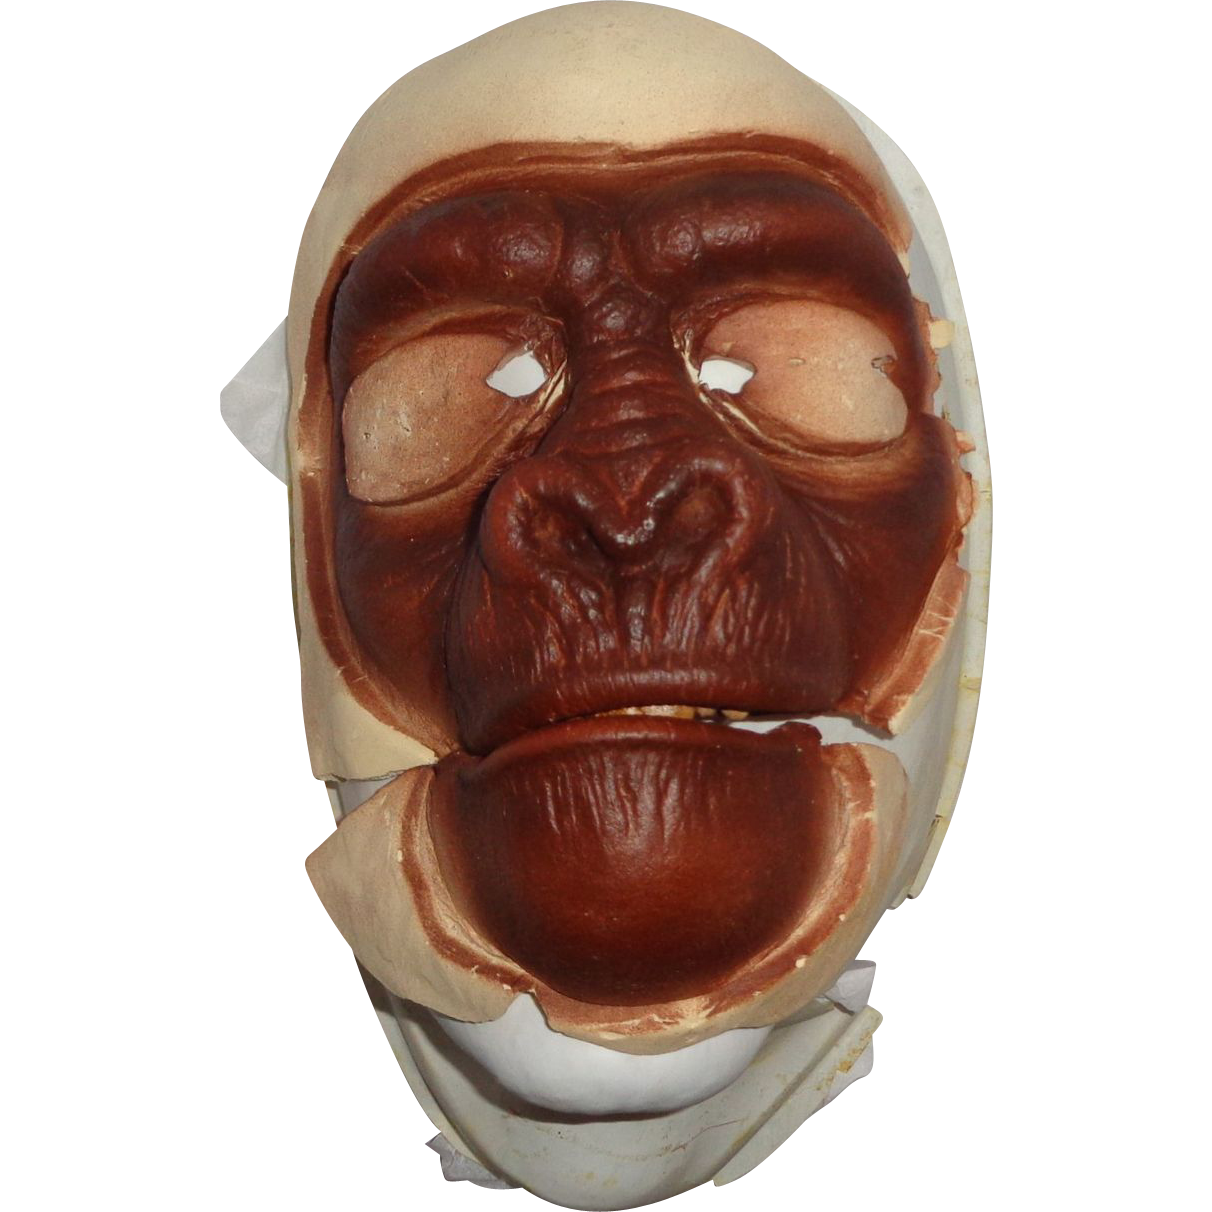 Planet Of The Apes Julius Makeup Appliance - Circa 1968)